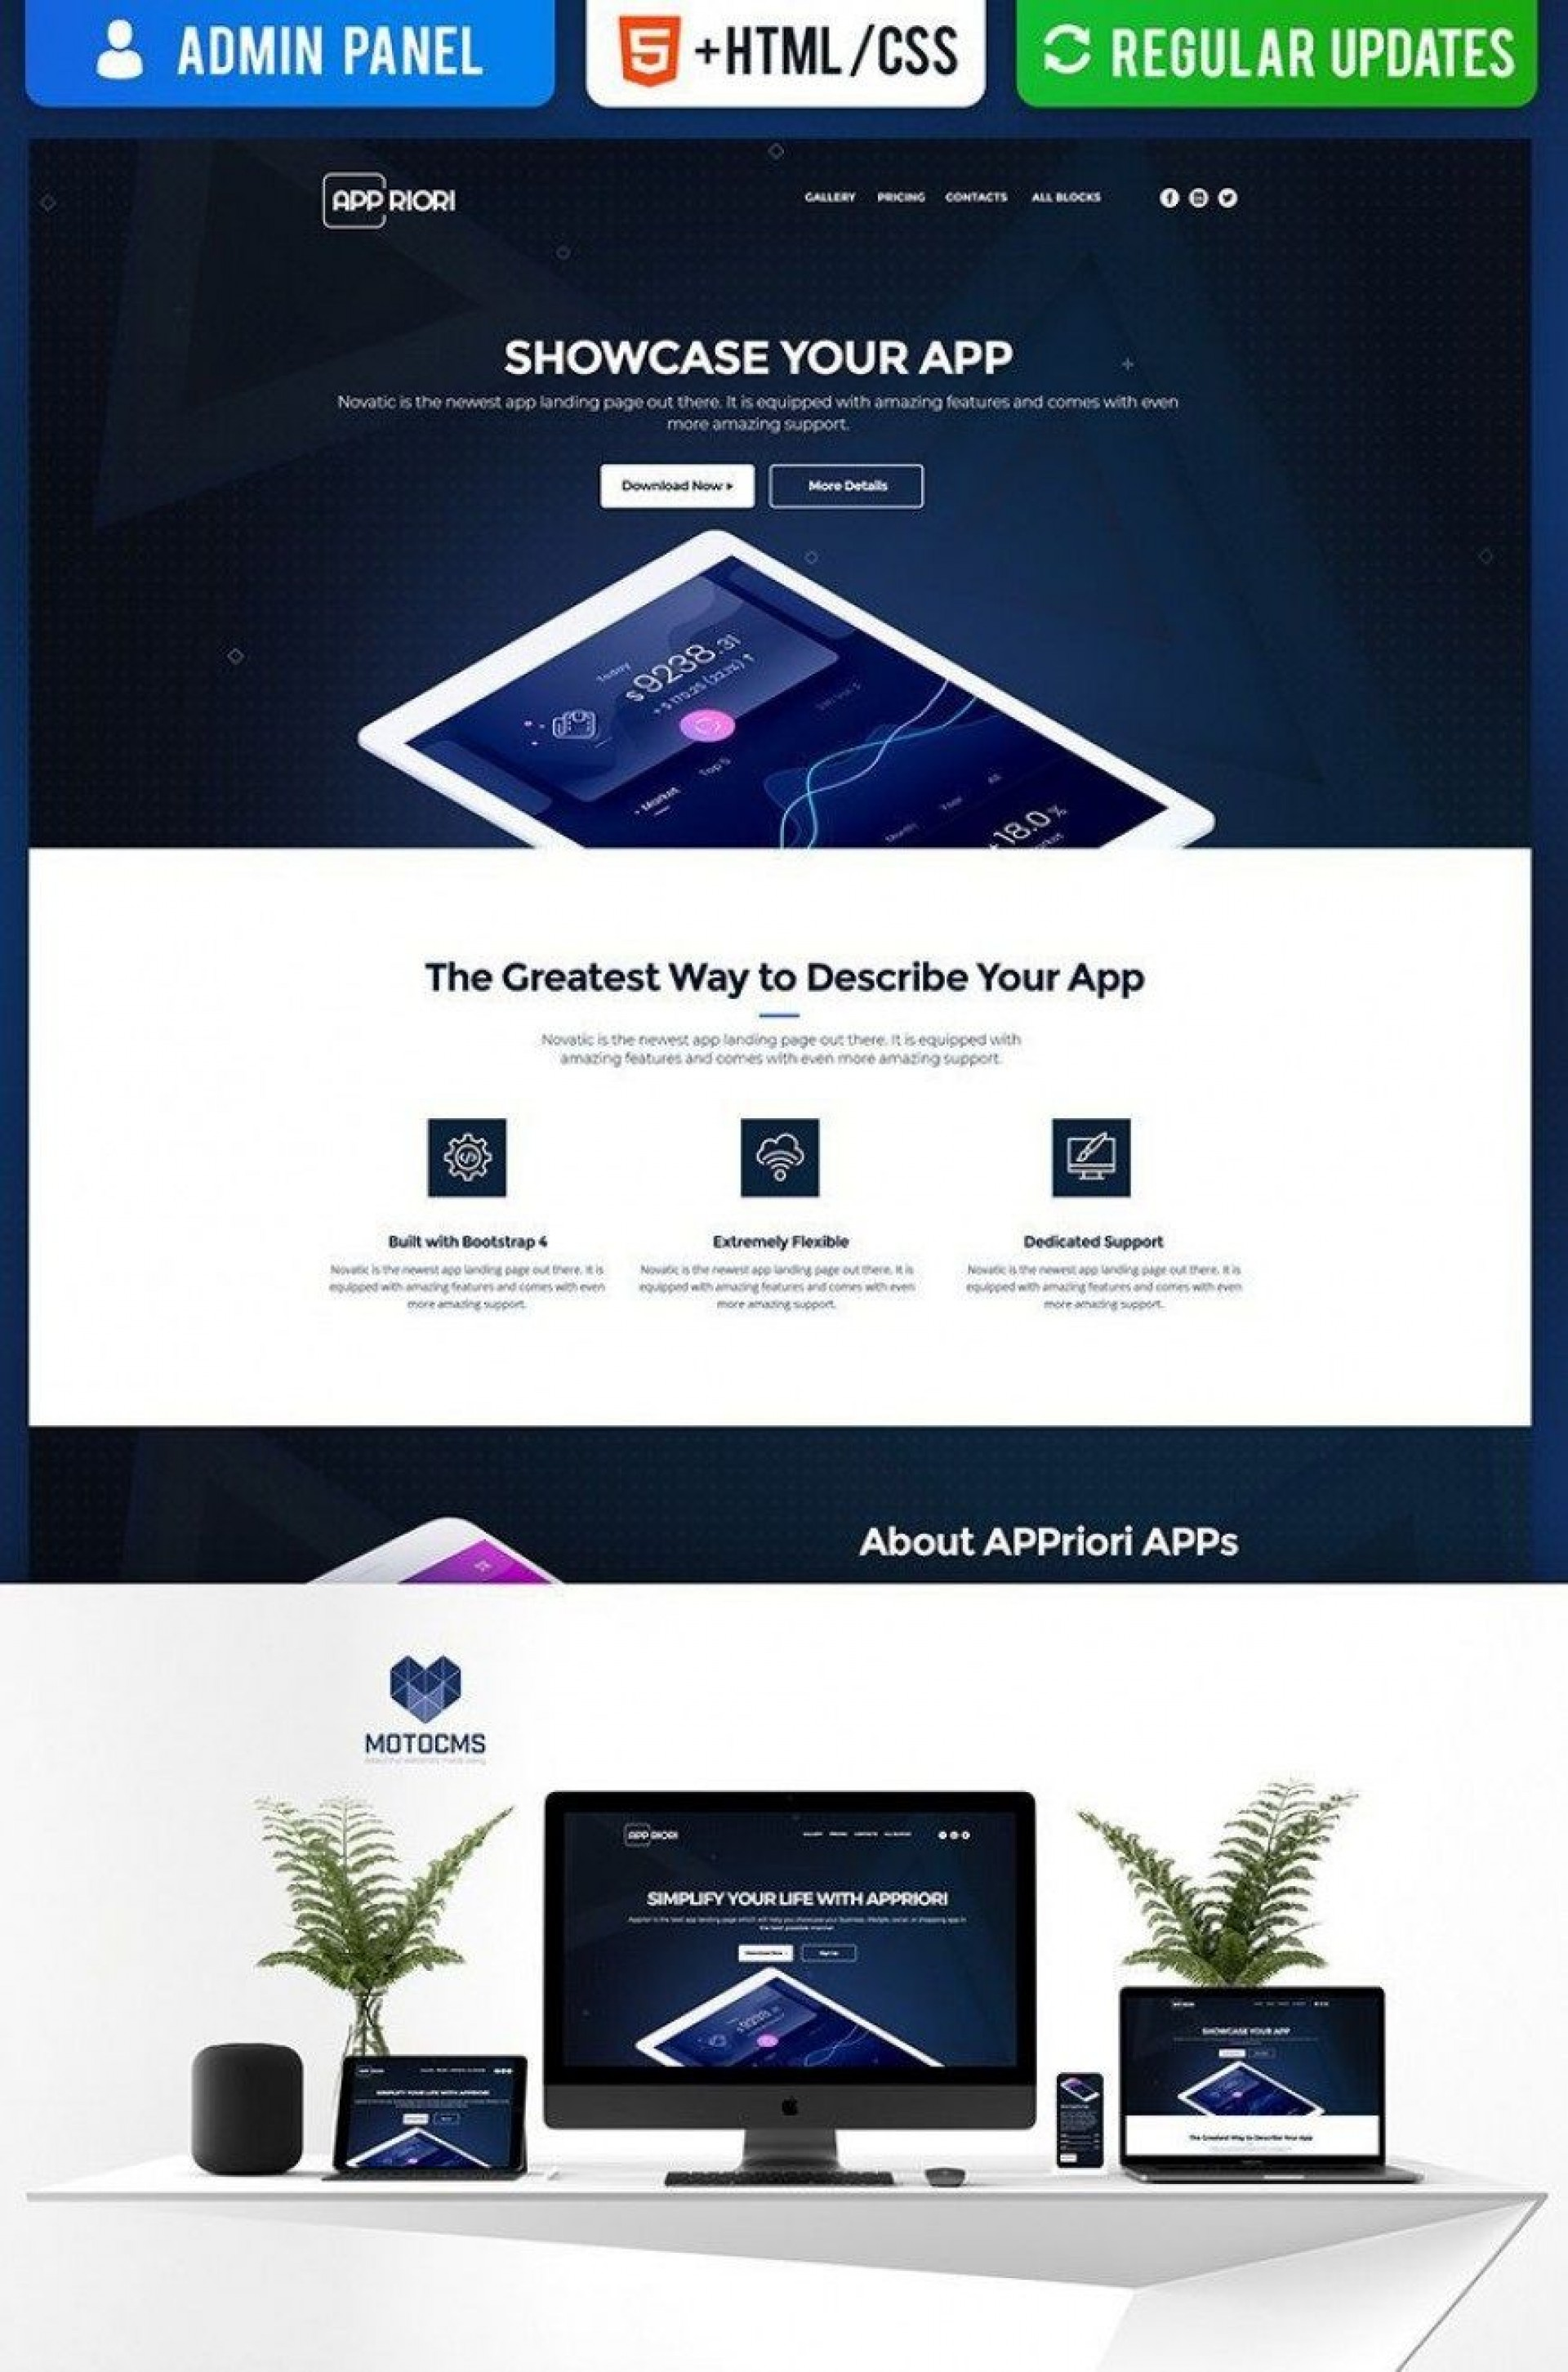 006 Excellent Csvape Esponsive Mobile App Landing Page Html Template Free Download High Definition  Csvape-responsive-mobile-app-landing-page-html-template1920